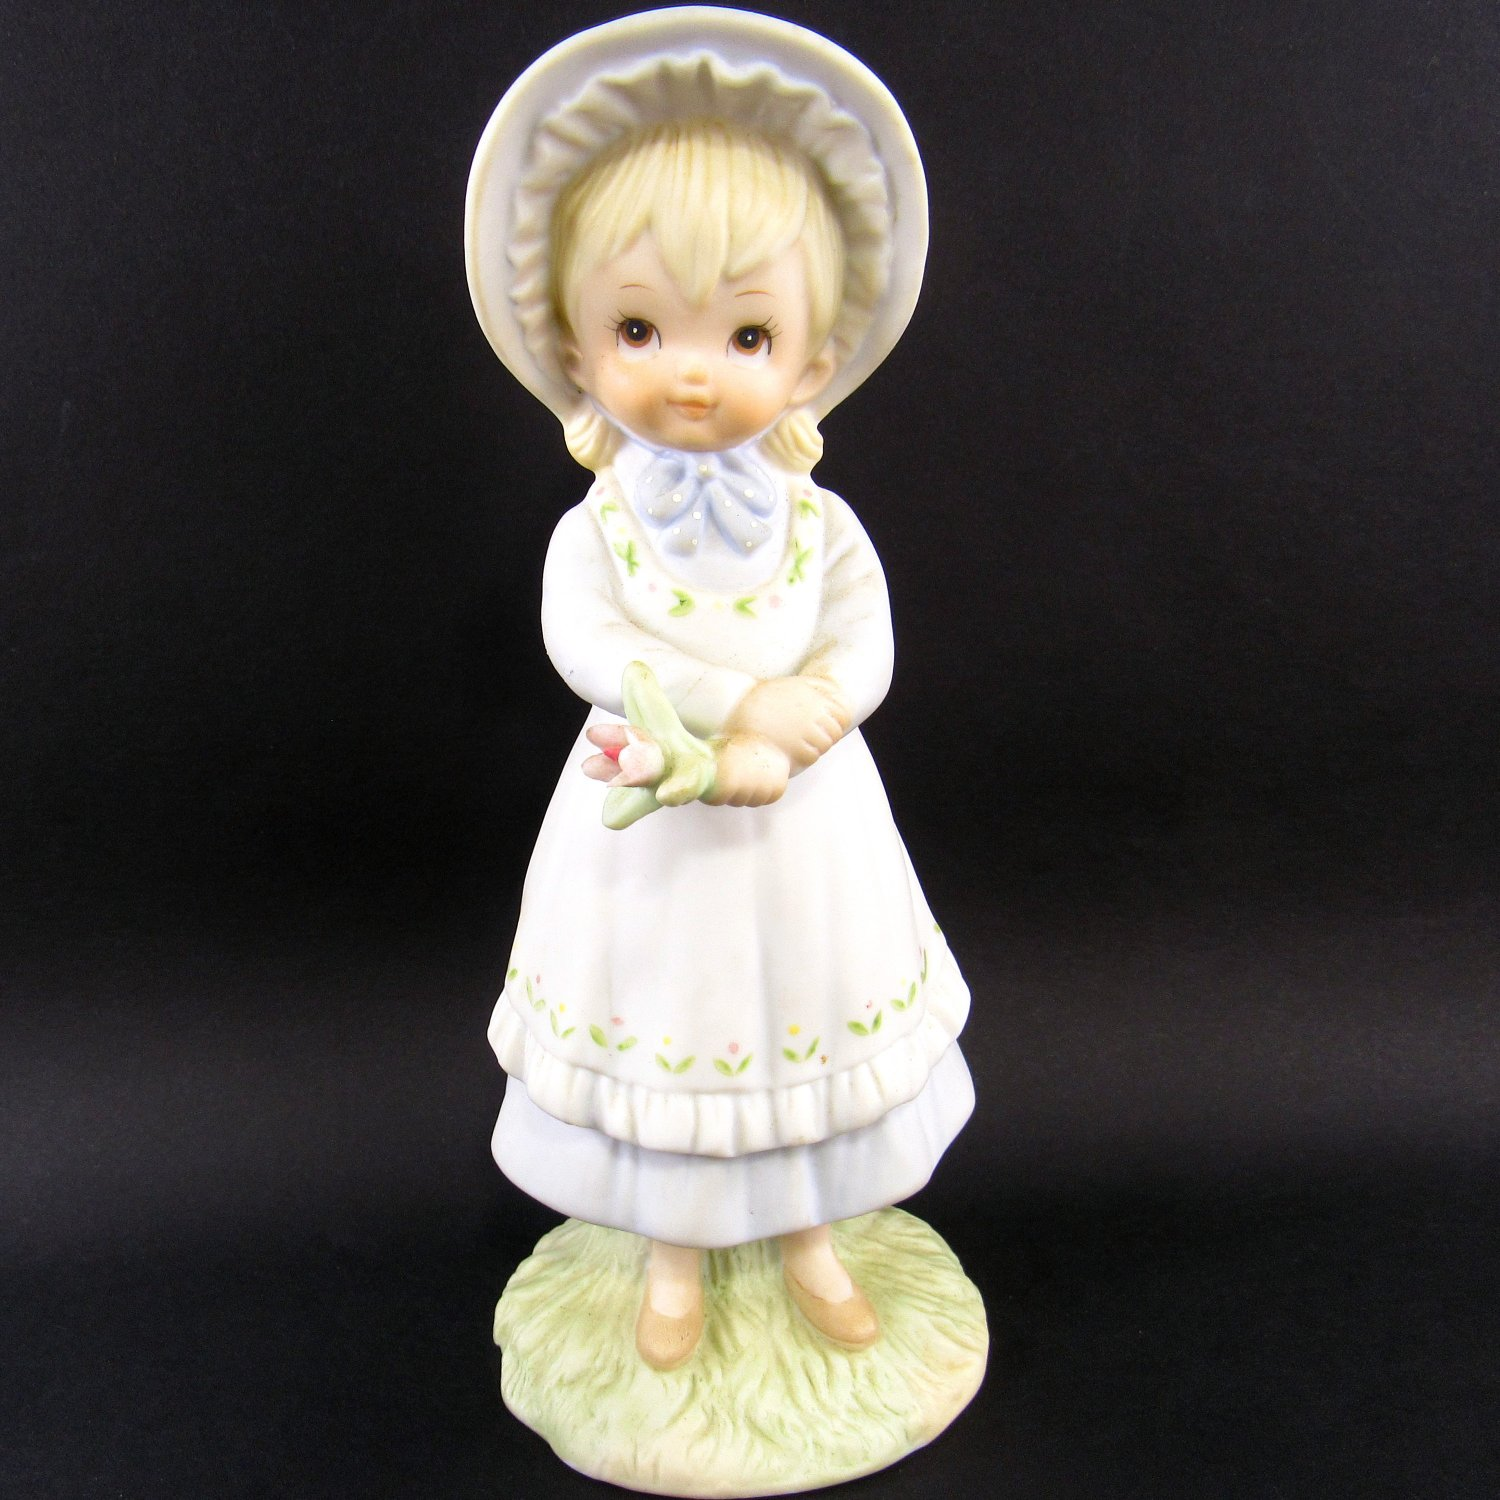 Lefton Figurine Girl With Flowers Warm Wishes and Flowers TWL-03854 Hand Painted 1980's 6 1/4 Inches